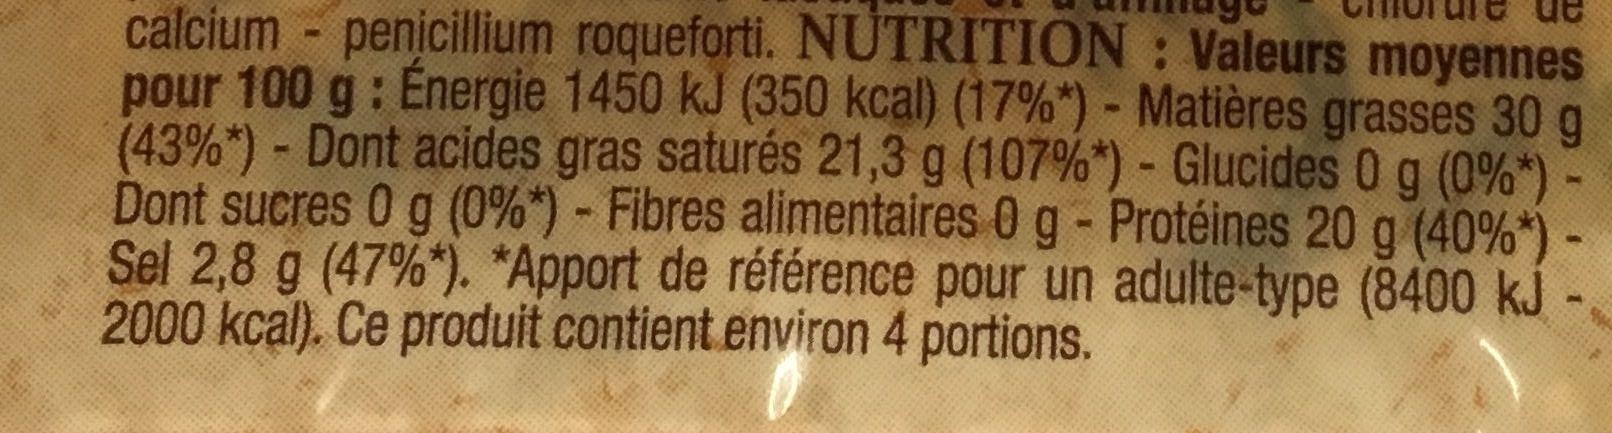 Bleu d'Auvergne - Nutrition facts